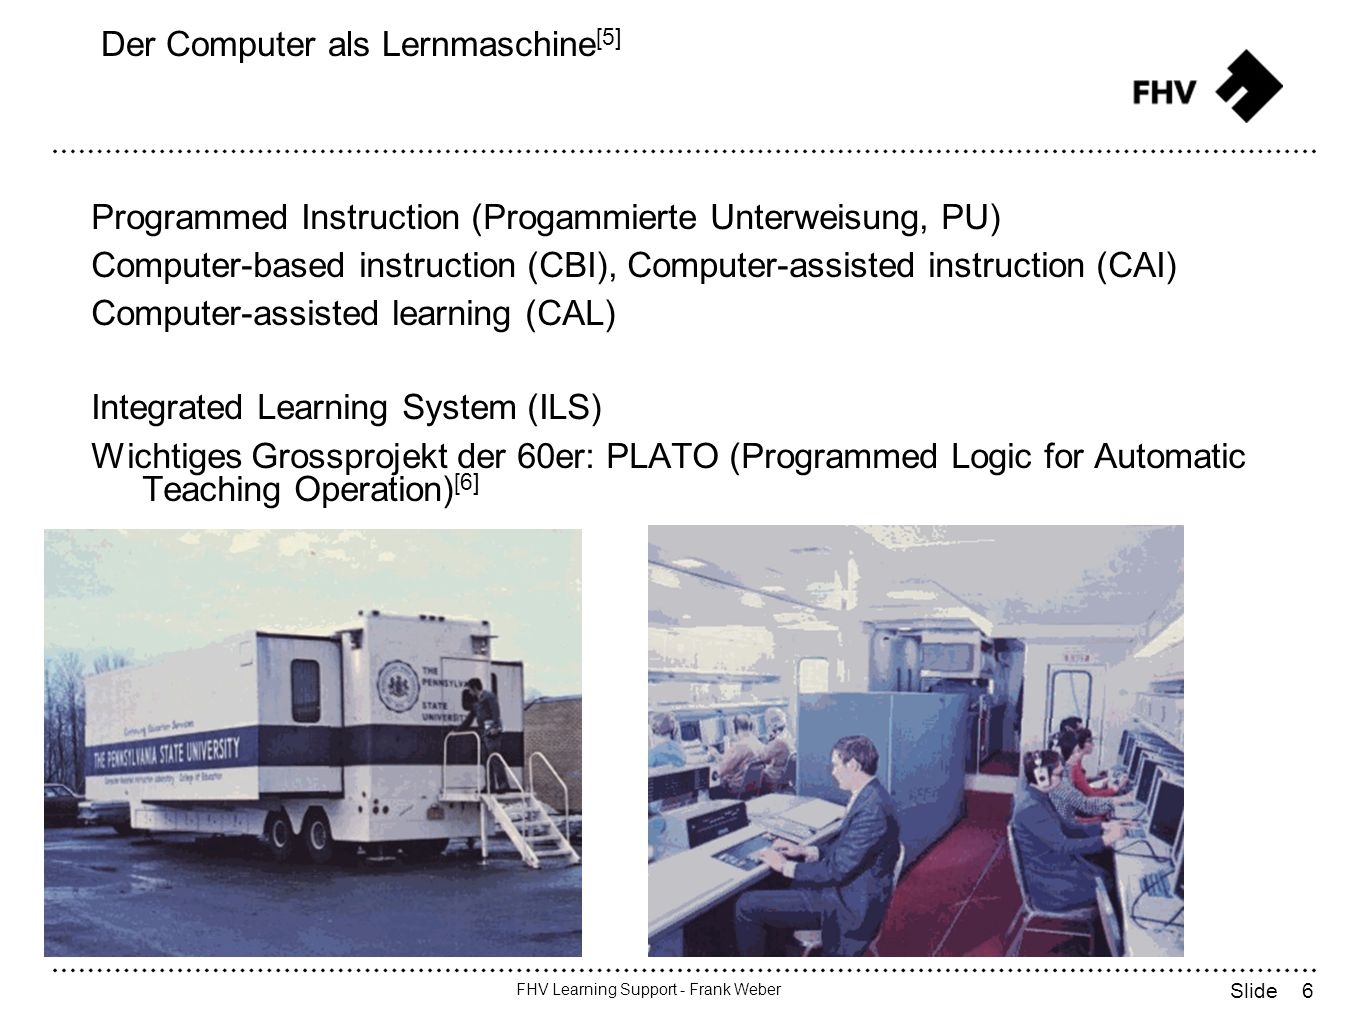 6 FHV Learning Support - Frank Weber Slide Der Computer als Lernmaschine [5] Programmed Instruction (Progammierte Unterweisung, PU) Computer-based instruction (CBI), Computer-assisted instruction (CAI) Computer-assisted learning (CAL) Integrated Learning System (ILS) Wichtiges Grossprojekt der 60er: PLATO (Programmed Logic for Automatic Teaching Operation) [6]